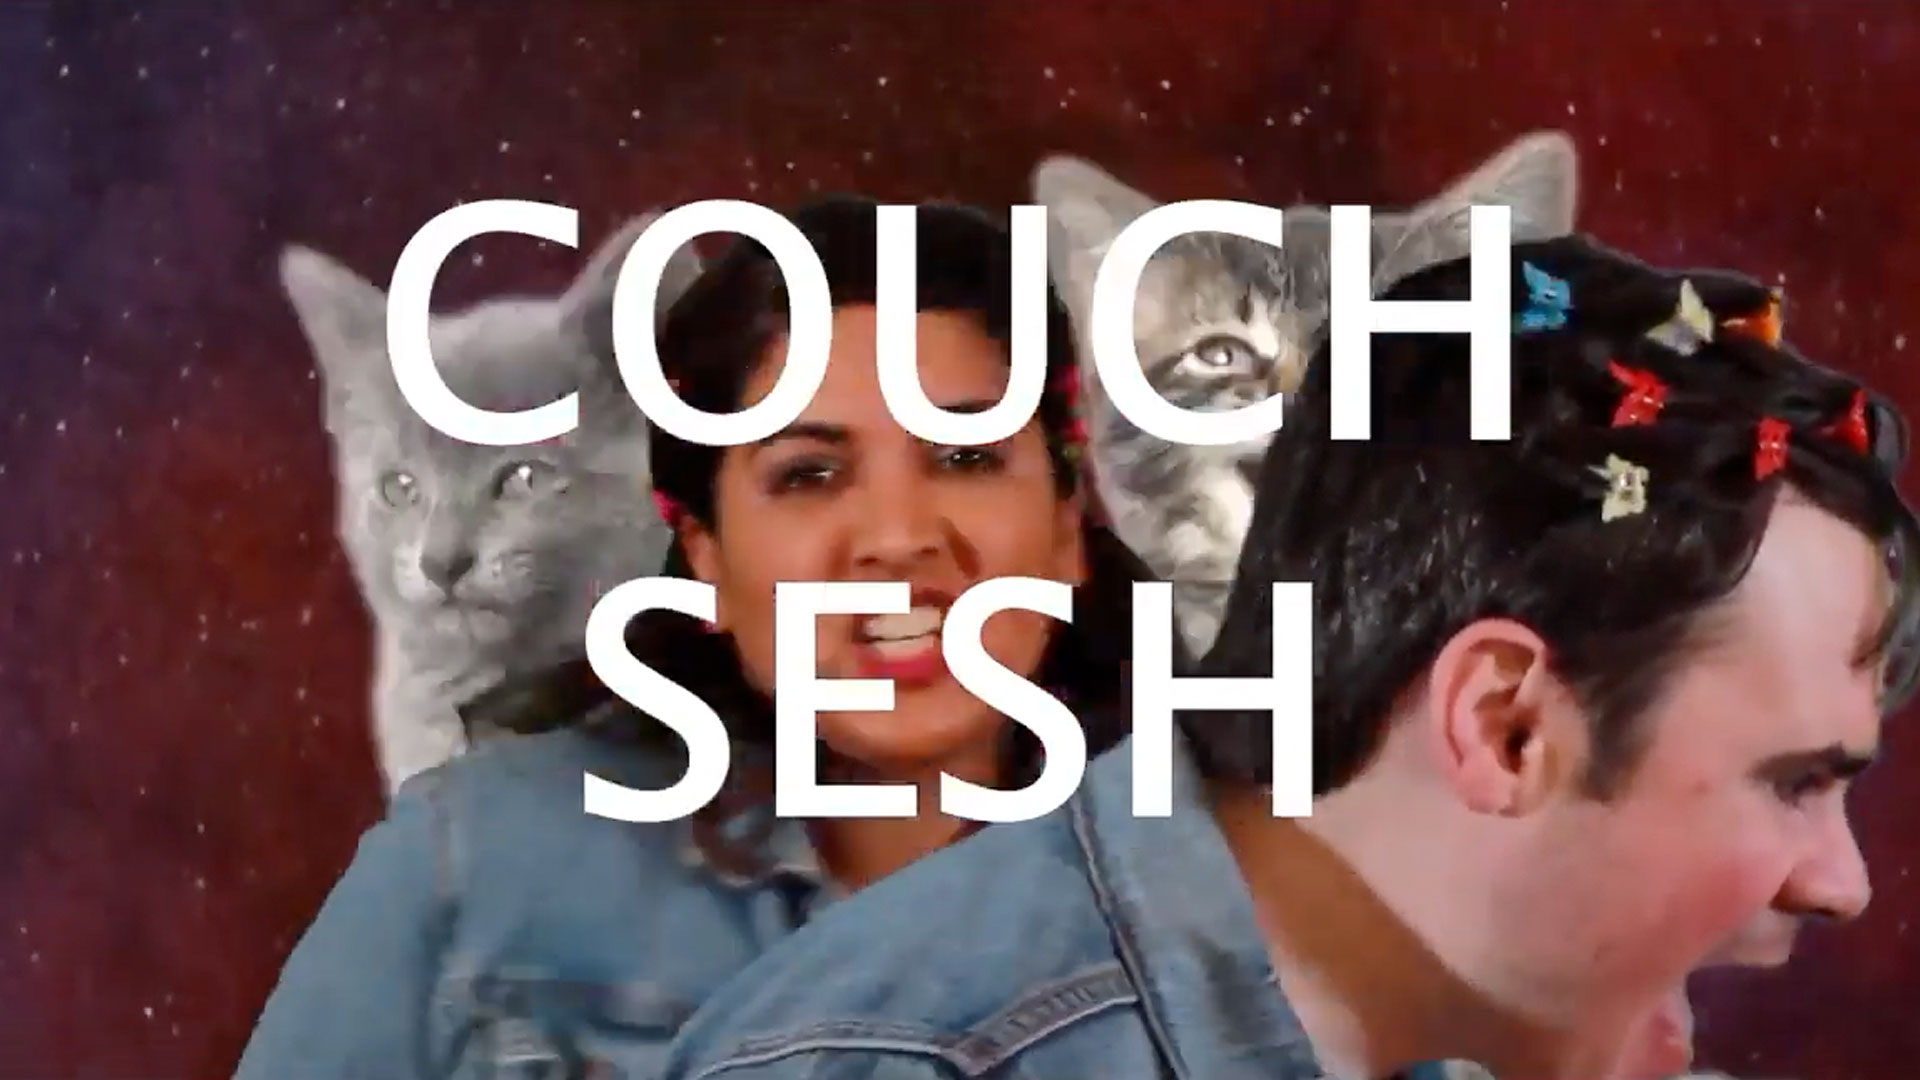 couch-sesh.jpg